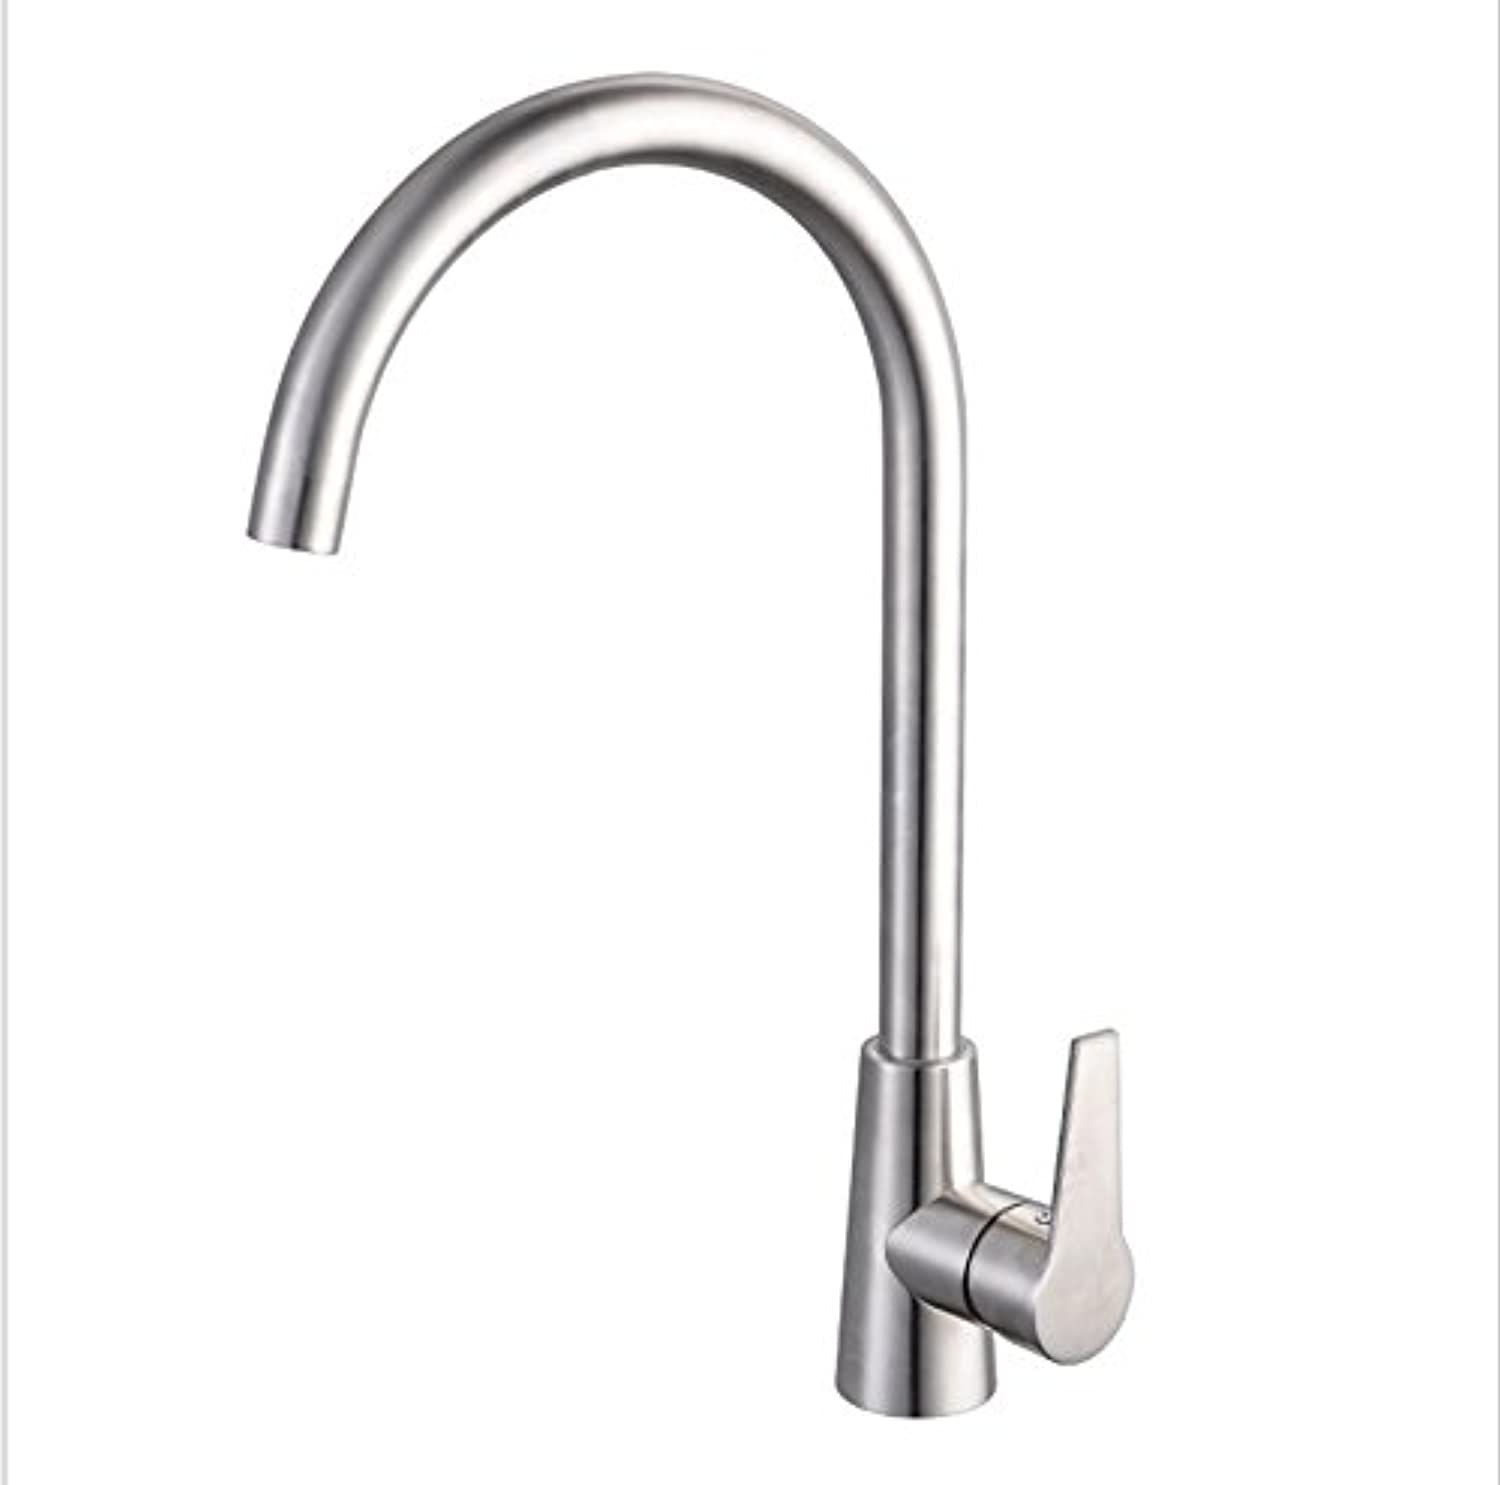 WUTONG 304 stainless steel kitchen faucet sink faucet 360 redating hot and cold faucet